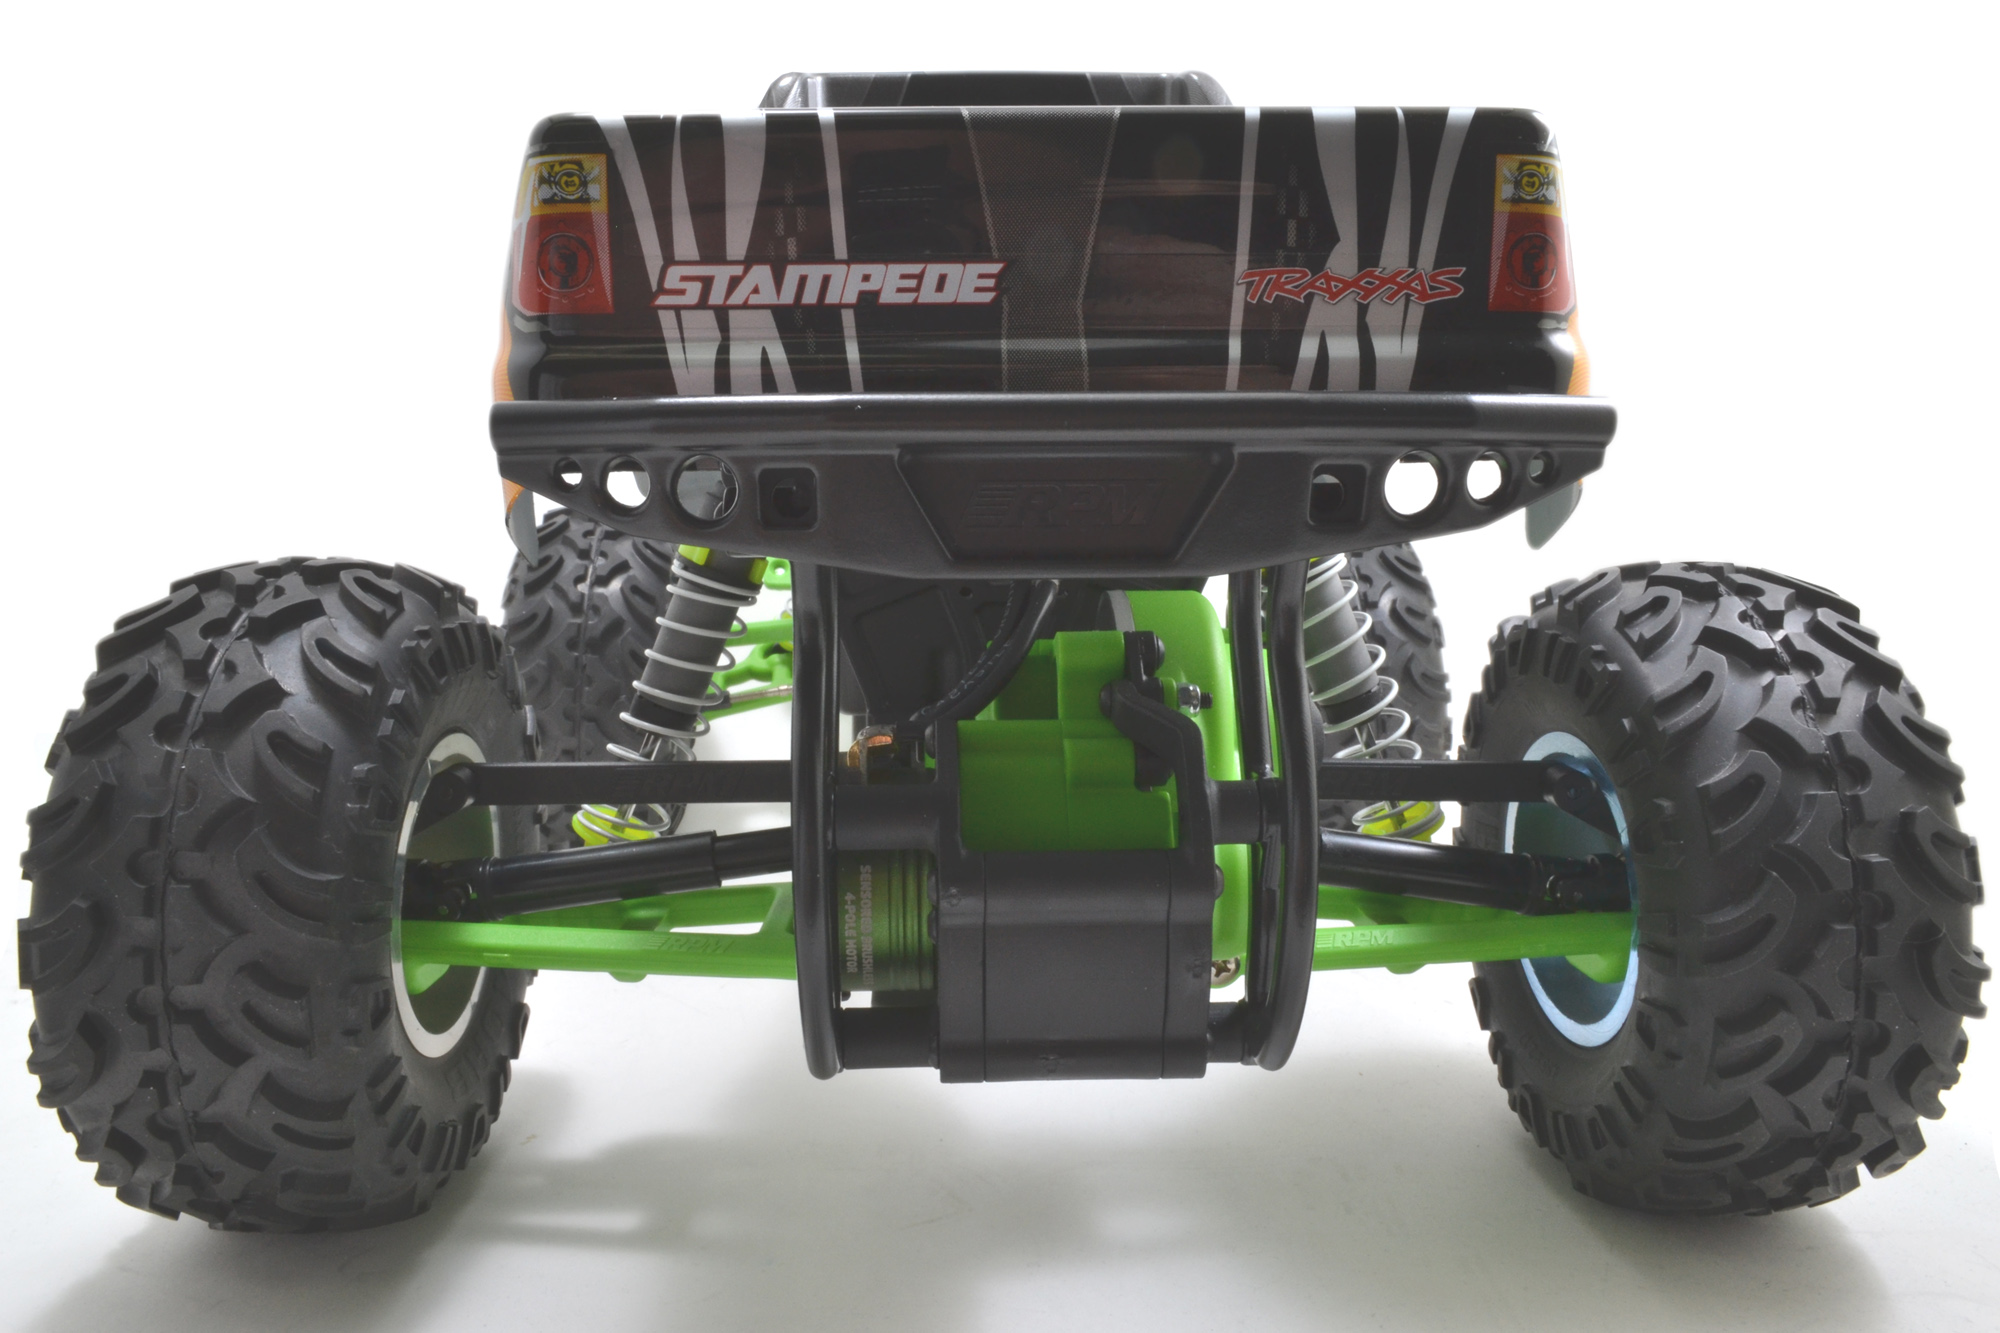 Rear Bumper for the Traxxas Stampede 2wd - RPM R/C Products